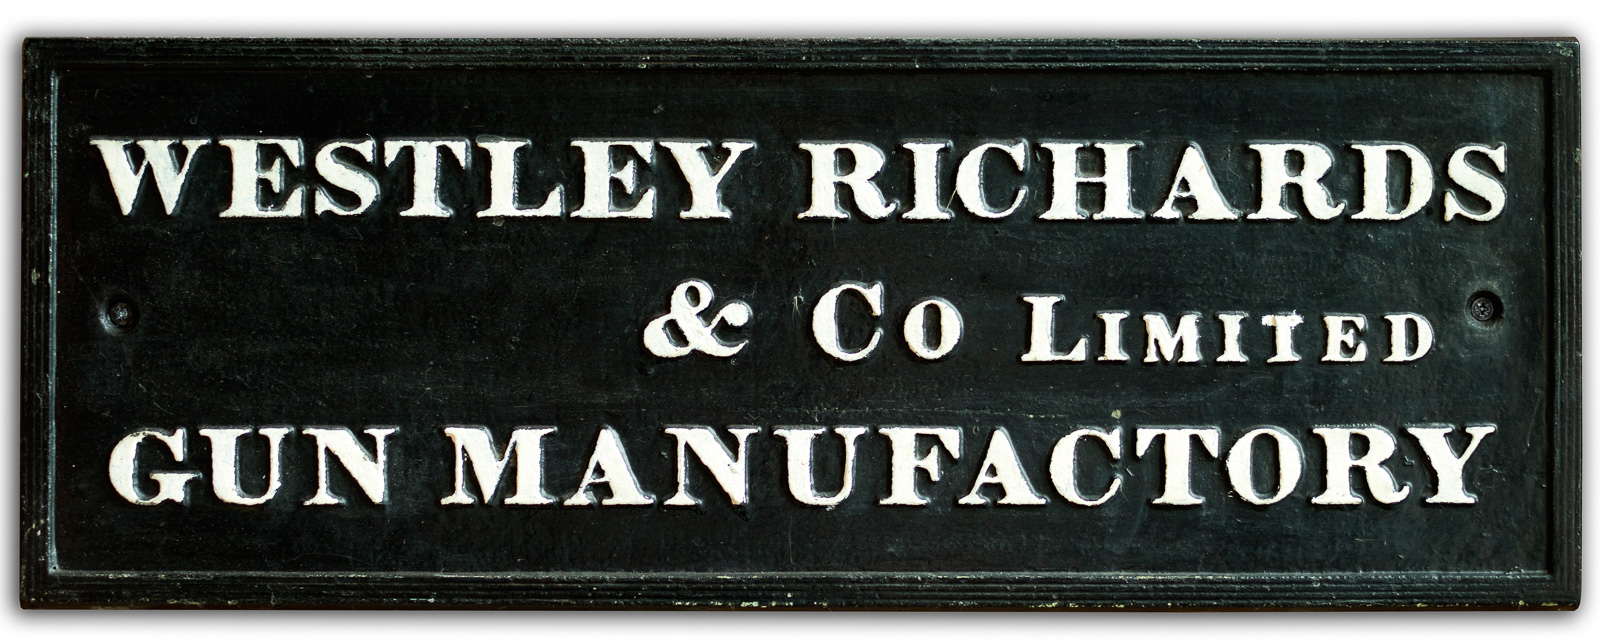 Westley Richards & Co Factory sign